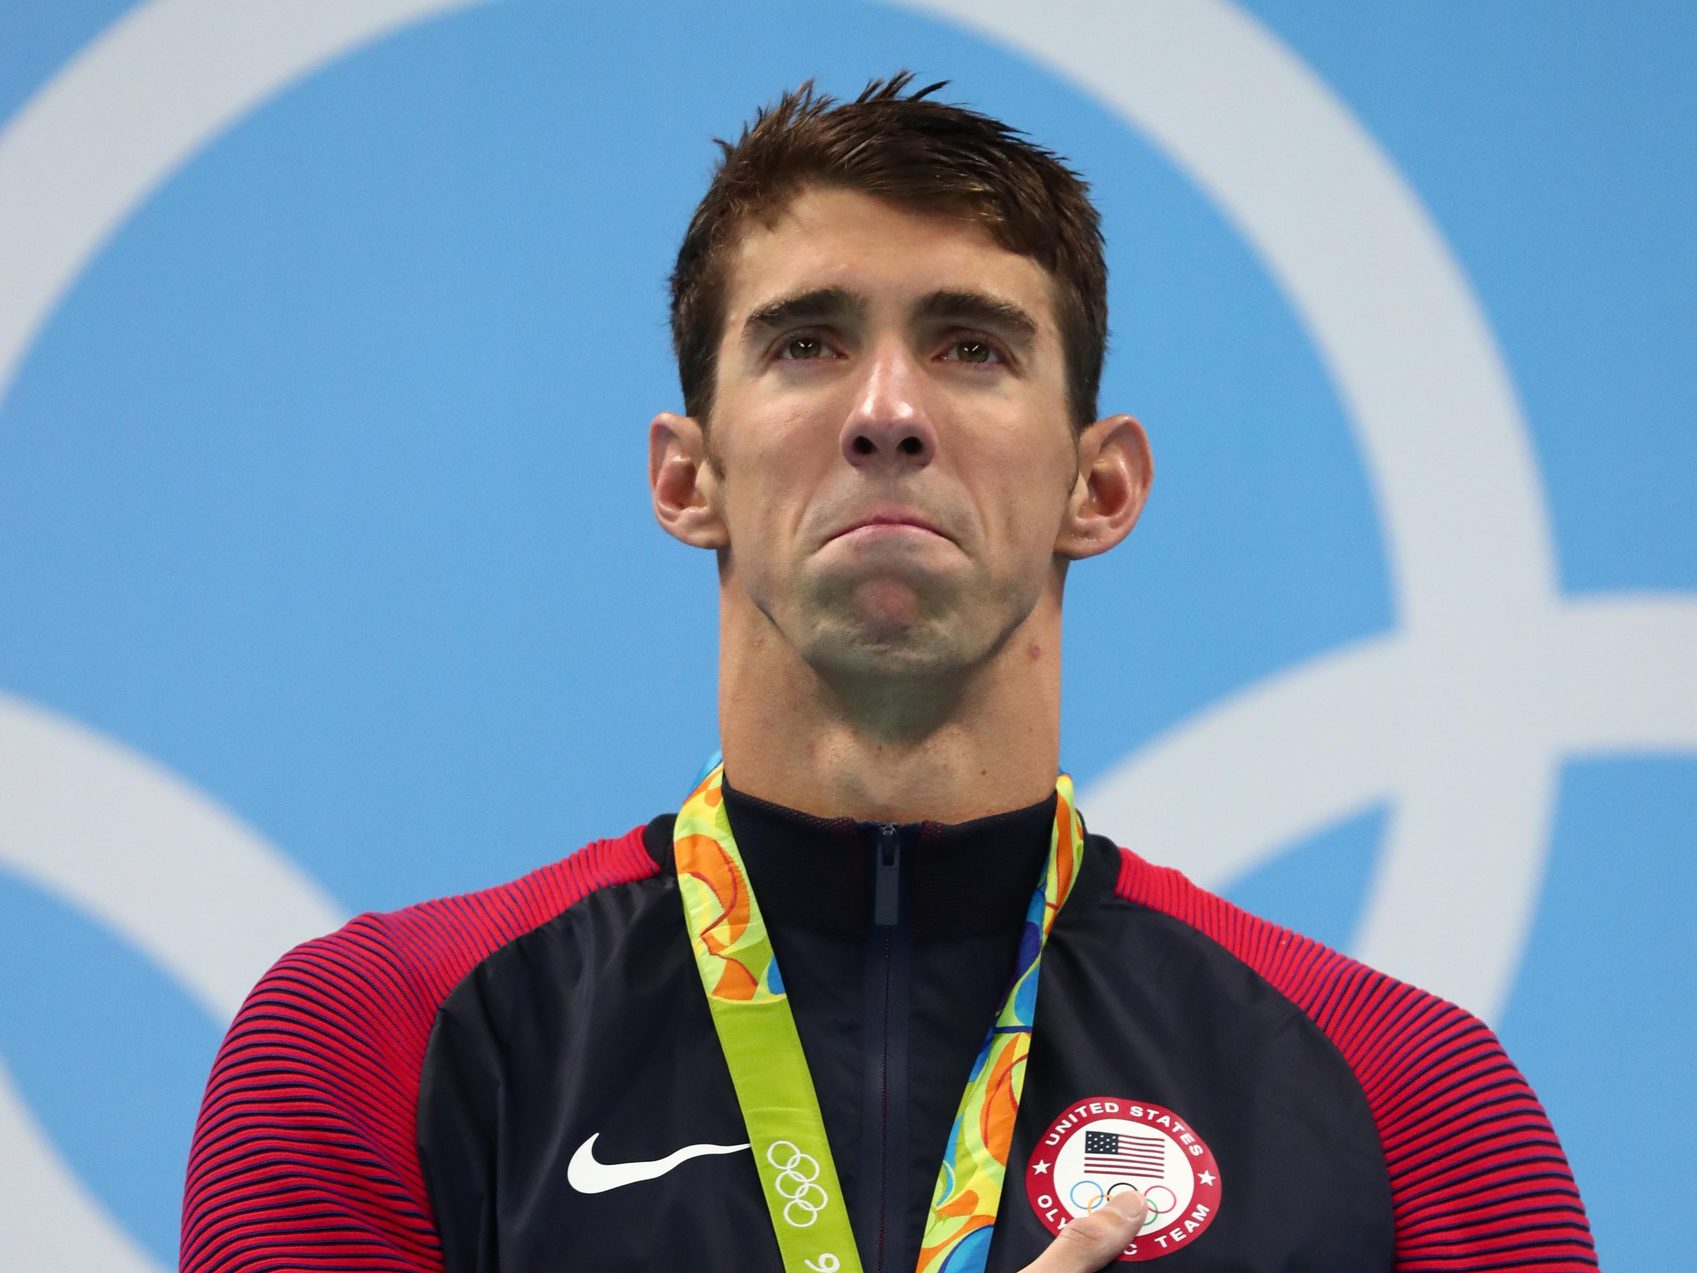 Michael Phelps stor Dick